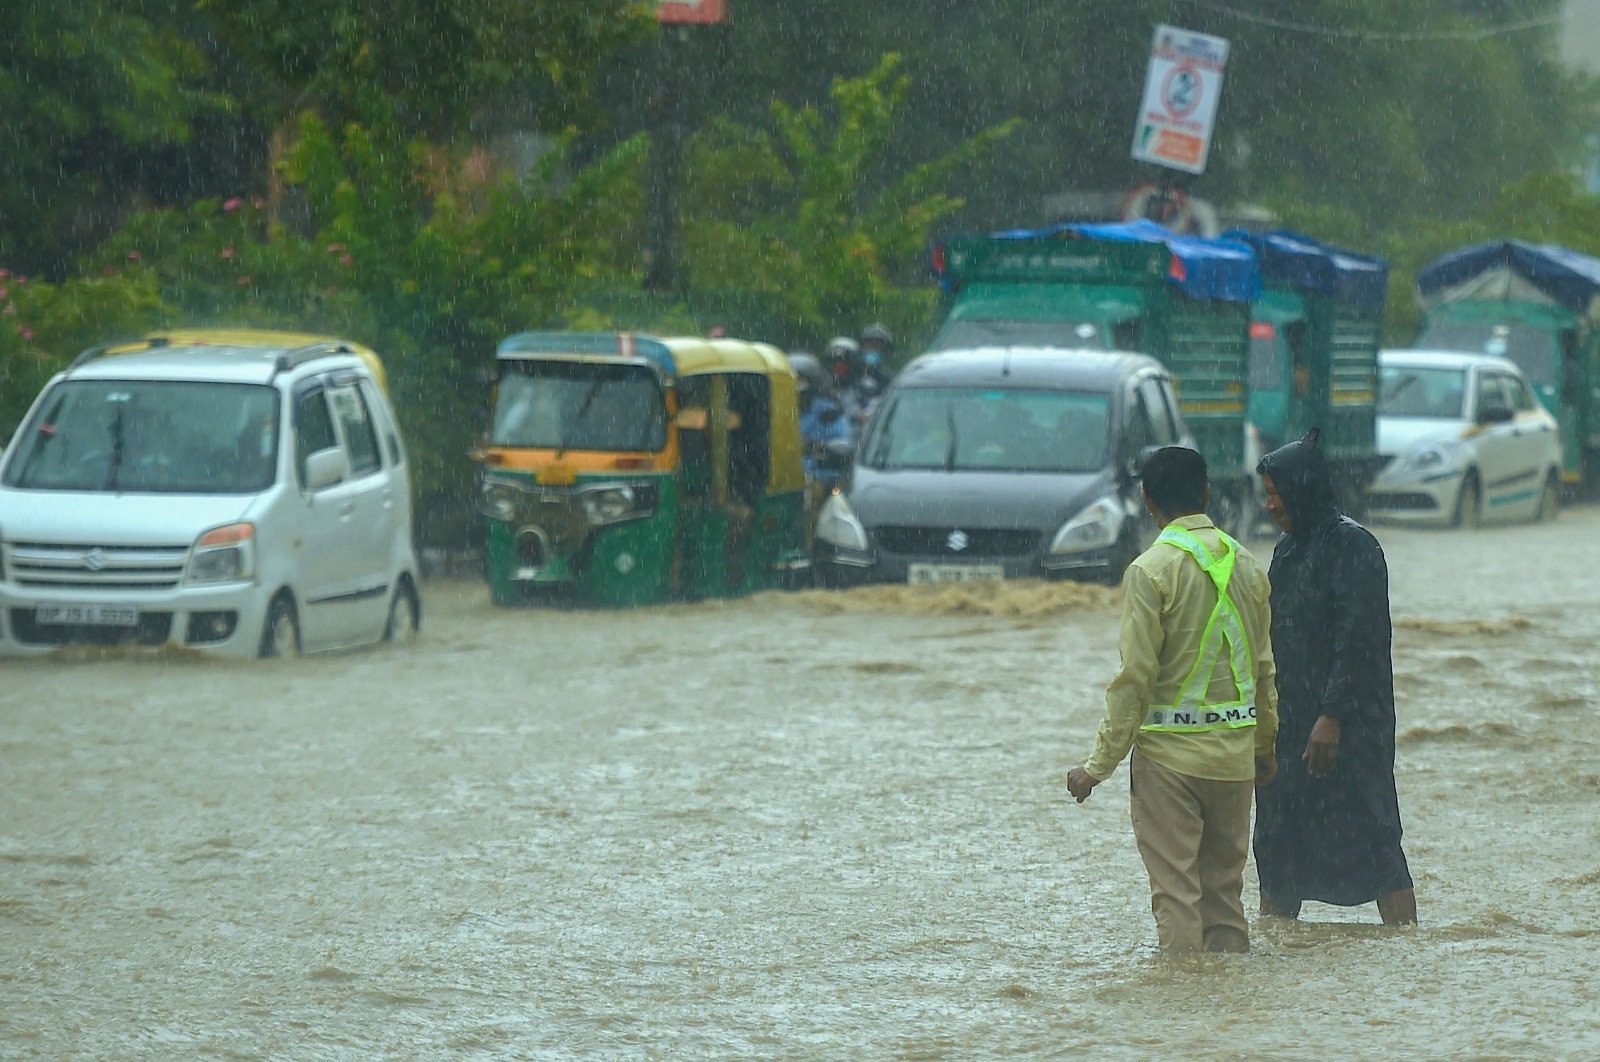 Commuters make their way as municipal workers stand along a waterlogged road following monsoon rainfalls, New Delhi, India, Aug. 19, 2020. (AFP Photo)